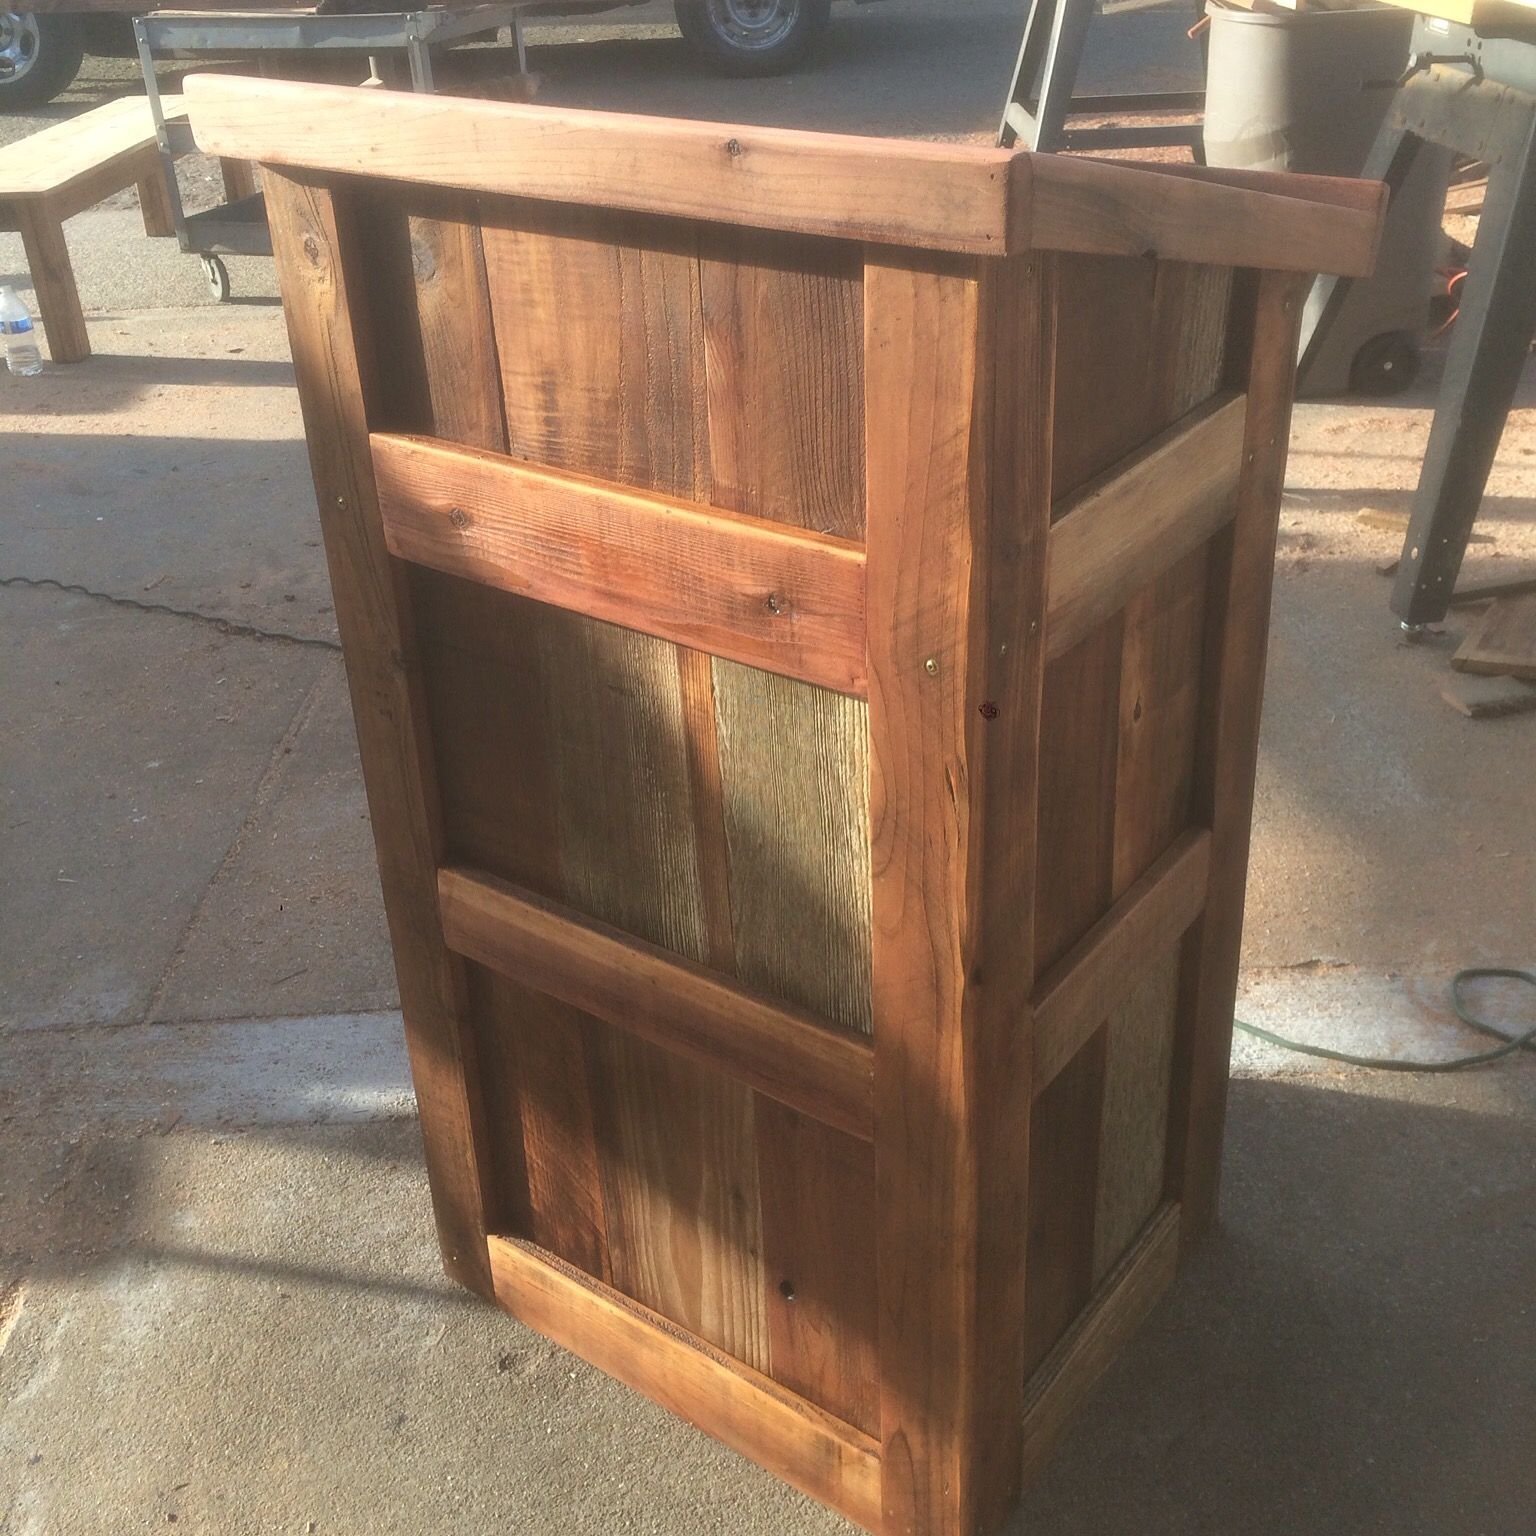 Hand Crafted Reclaimed Wood Podium By Urban Mining Company